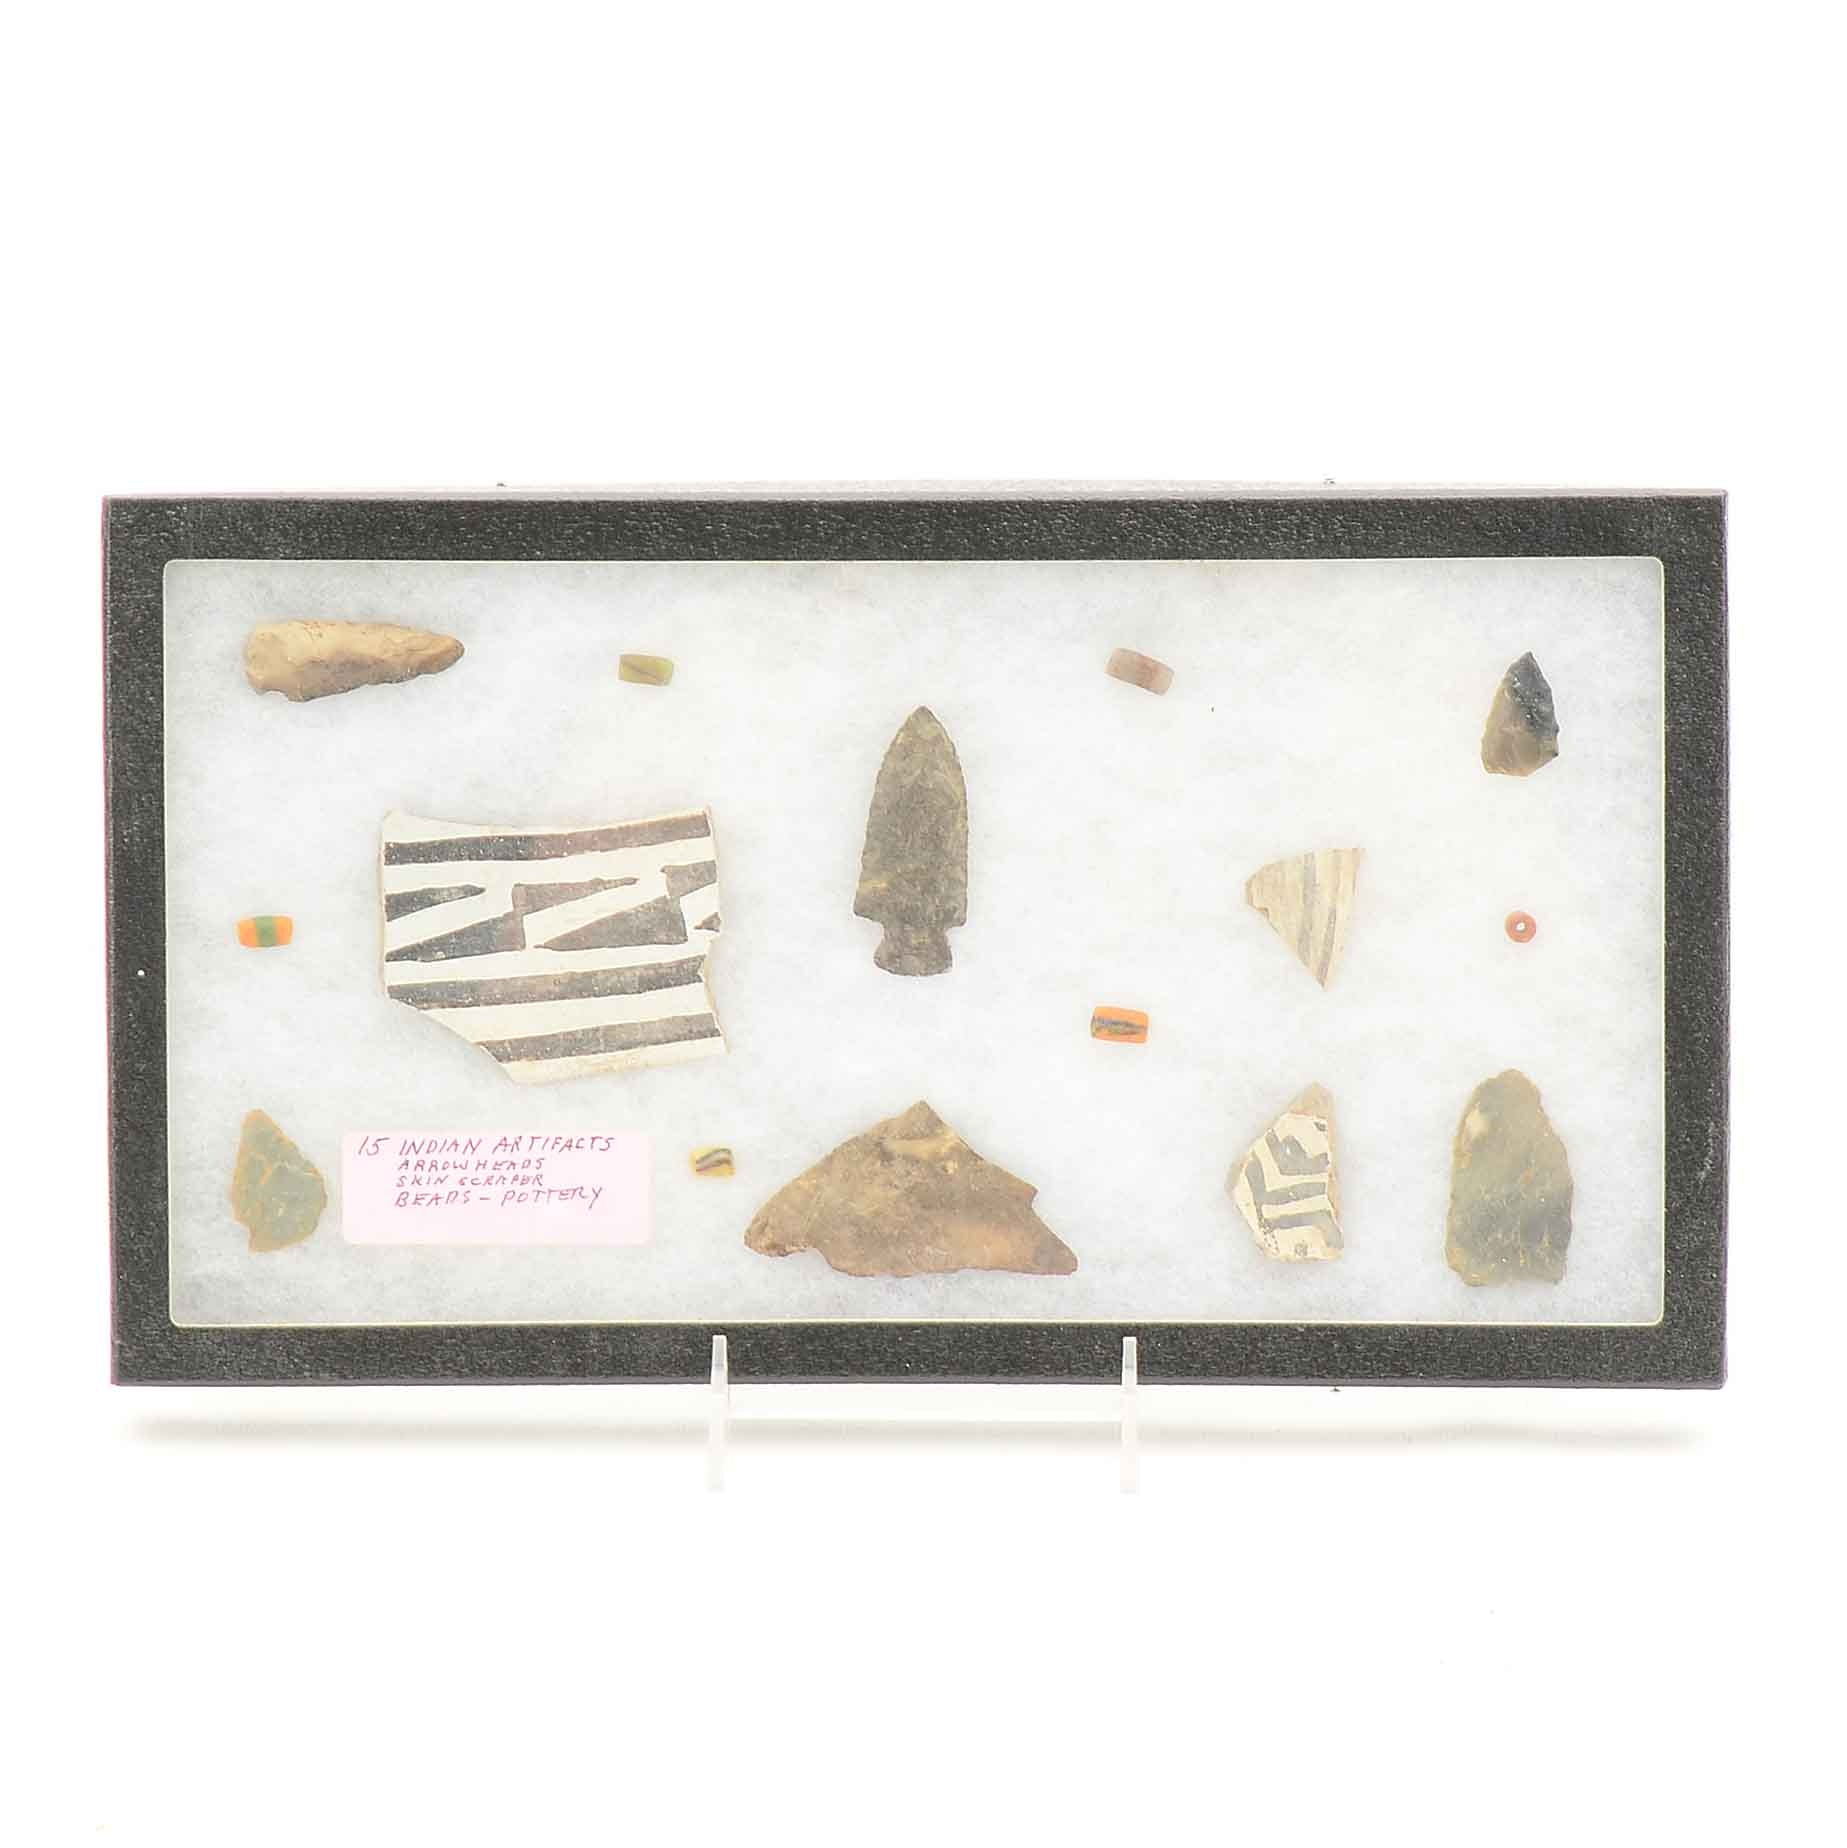 Collection of Native American Lithic and Ceramic Artifacts